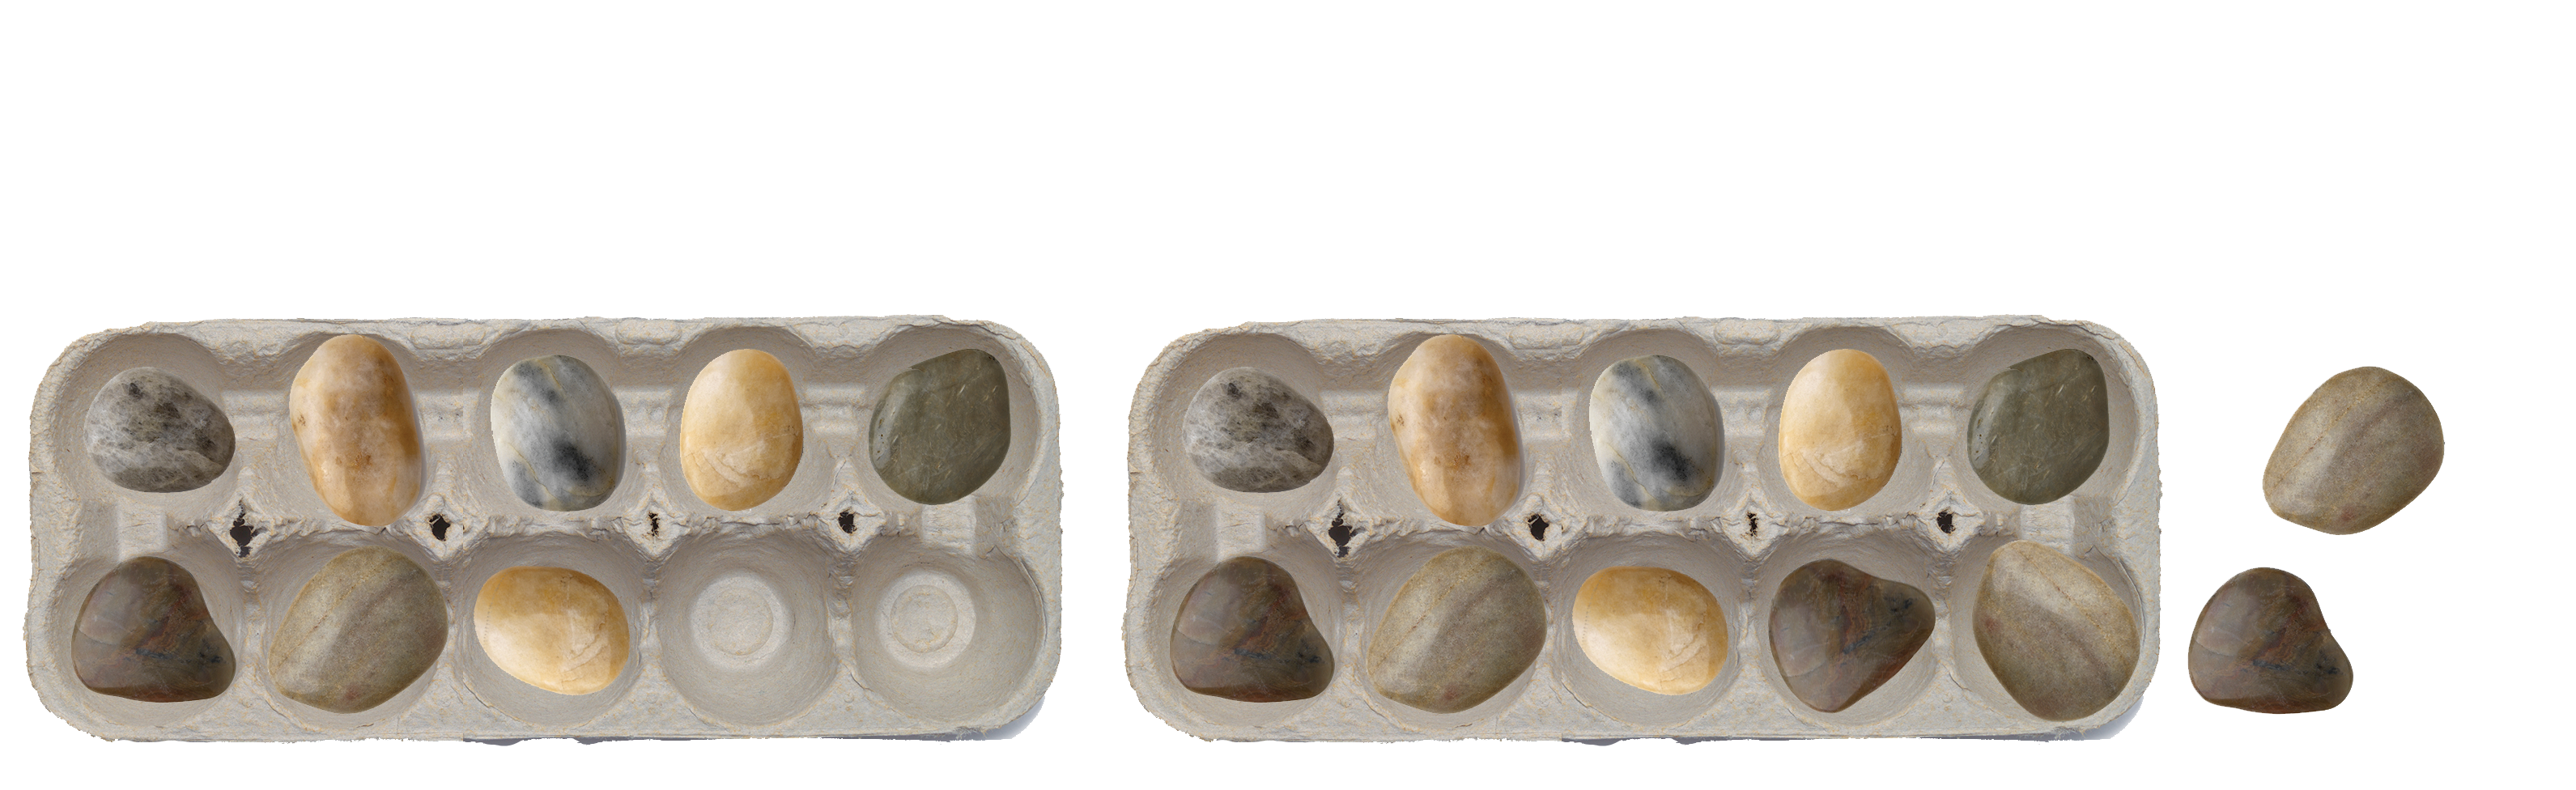 Egg cartons and stones